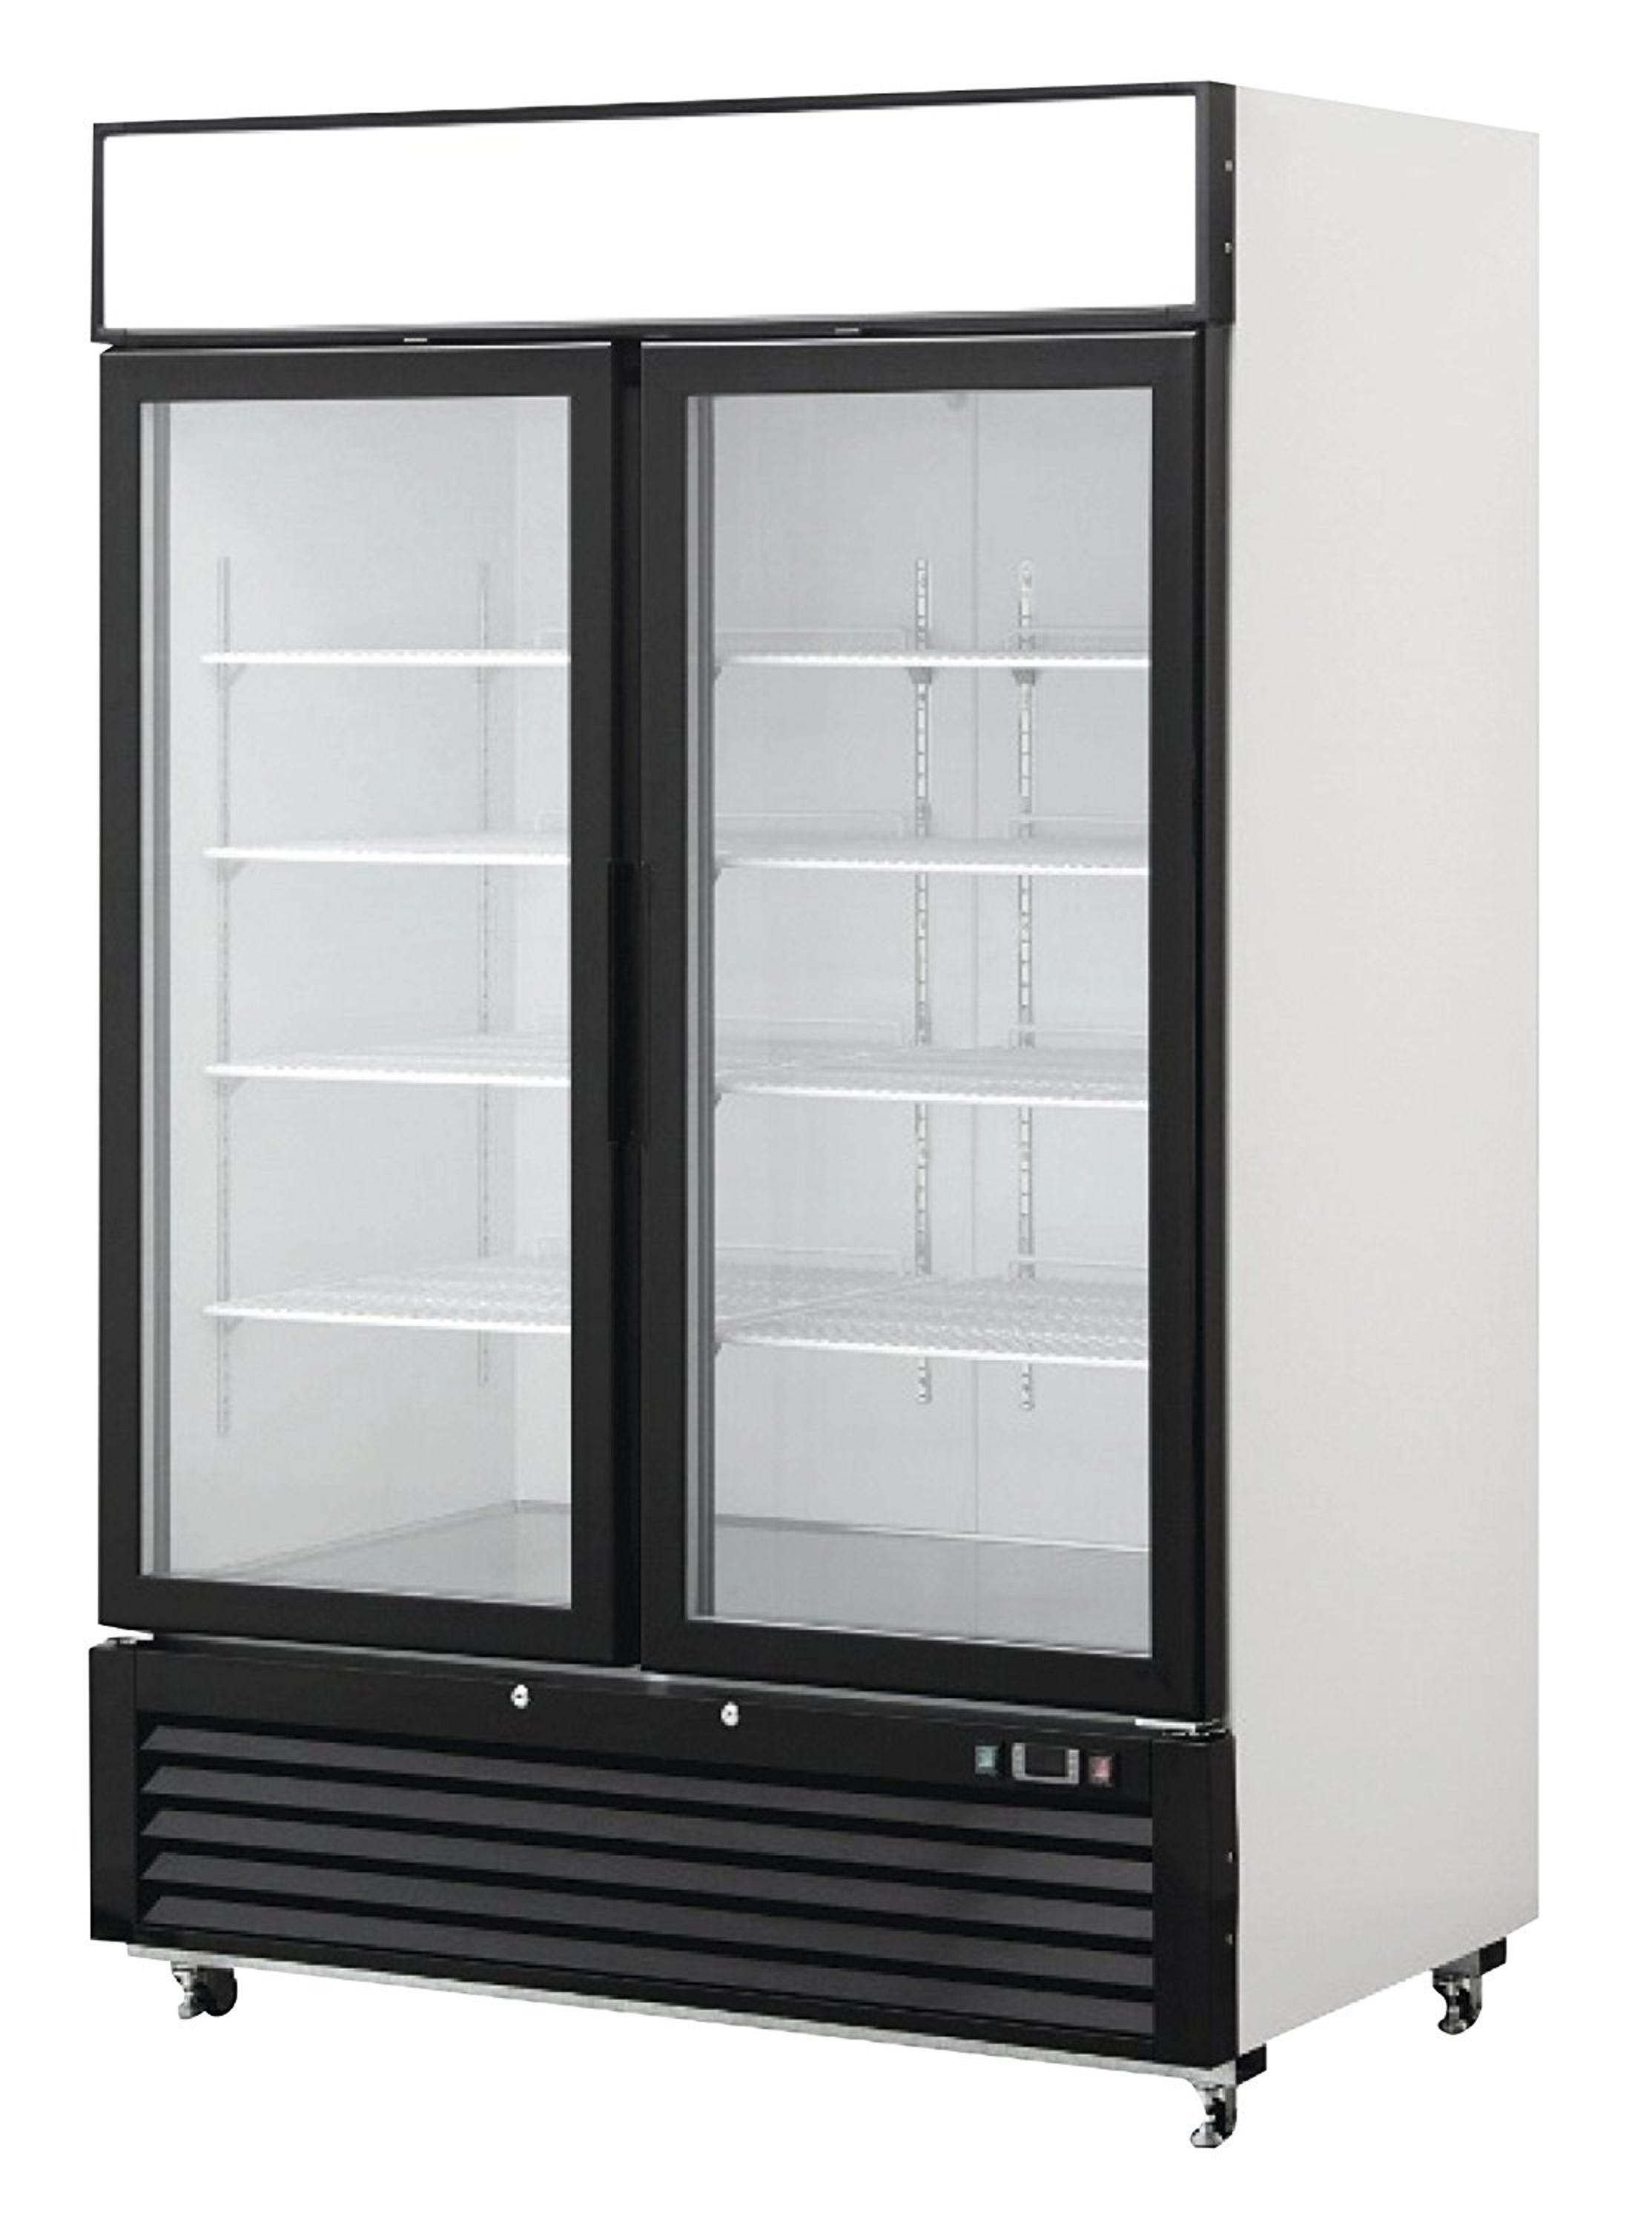 1500L Supermarket Three Glass Door Cold Storage Drinks Beverage and Beer Display Fridge